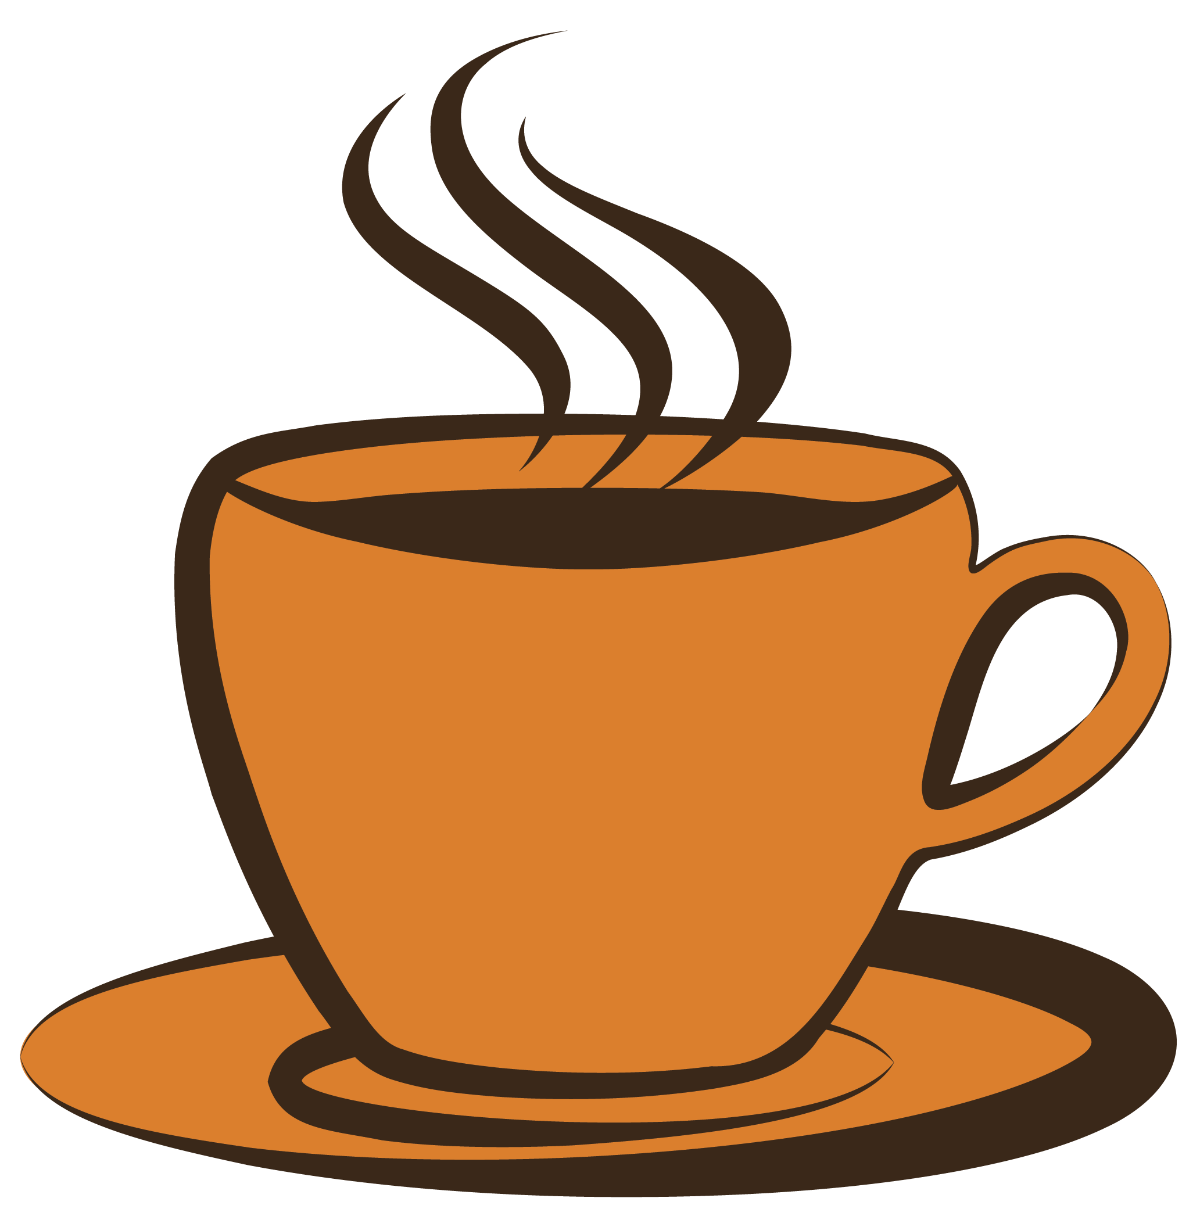 Free Transparent Coffee Cliparts, Download Free Clip Art, Free Clip.